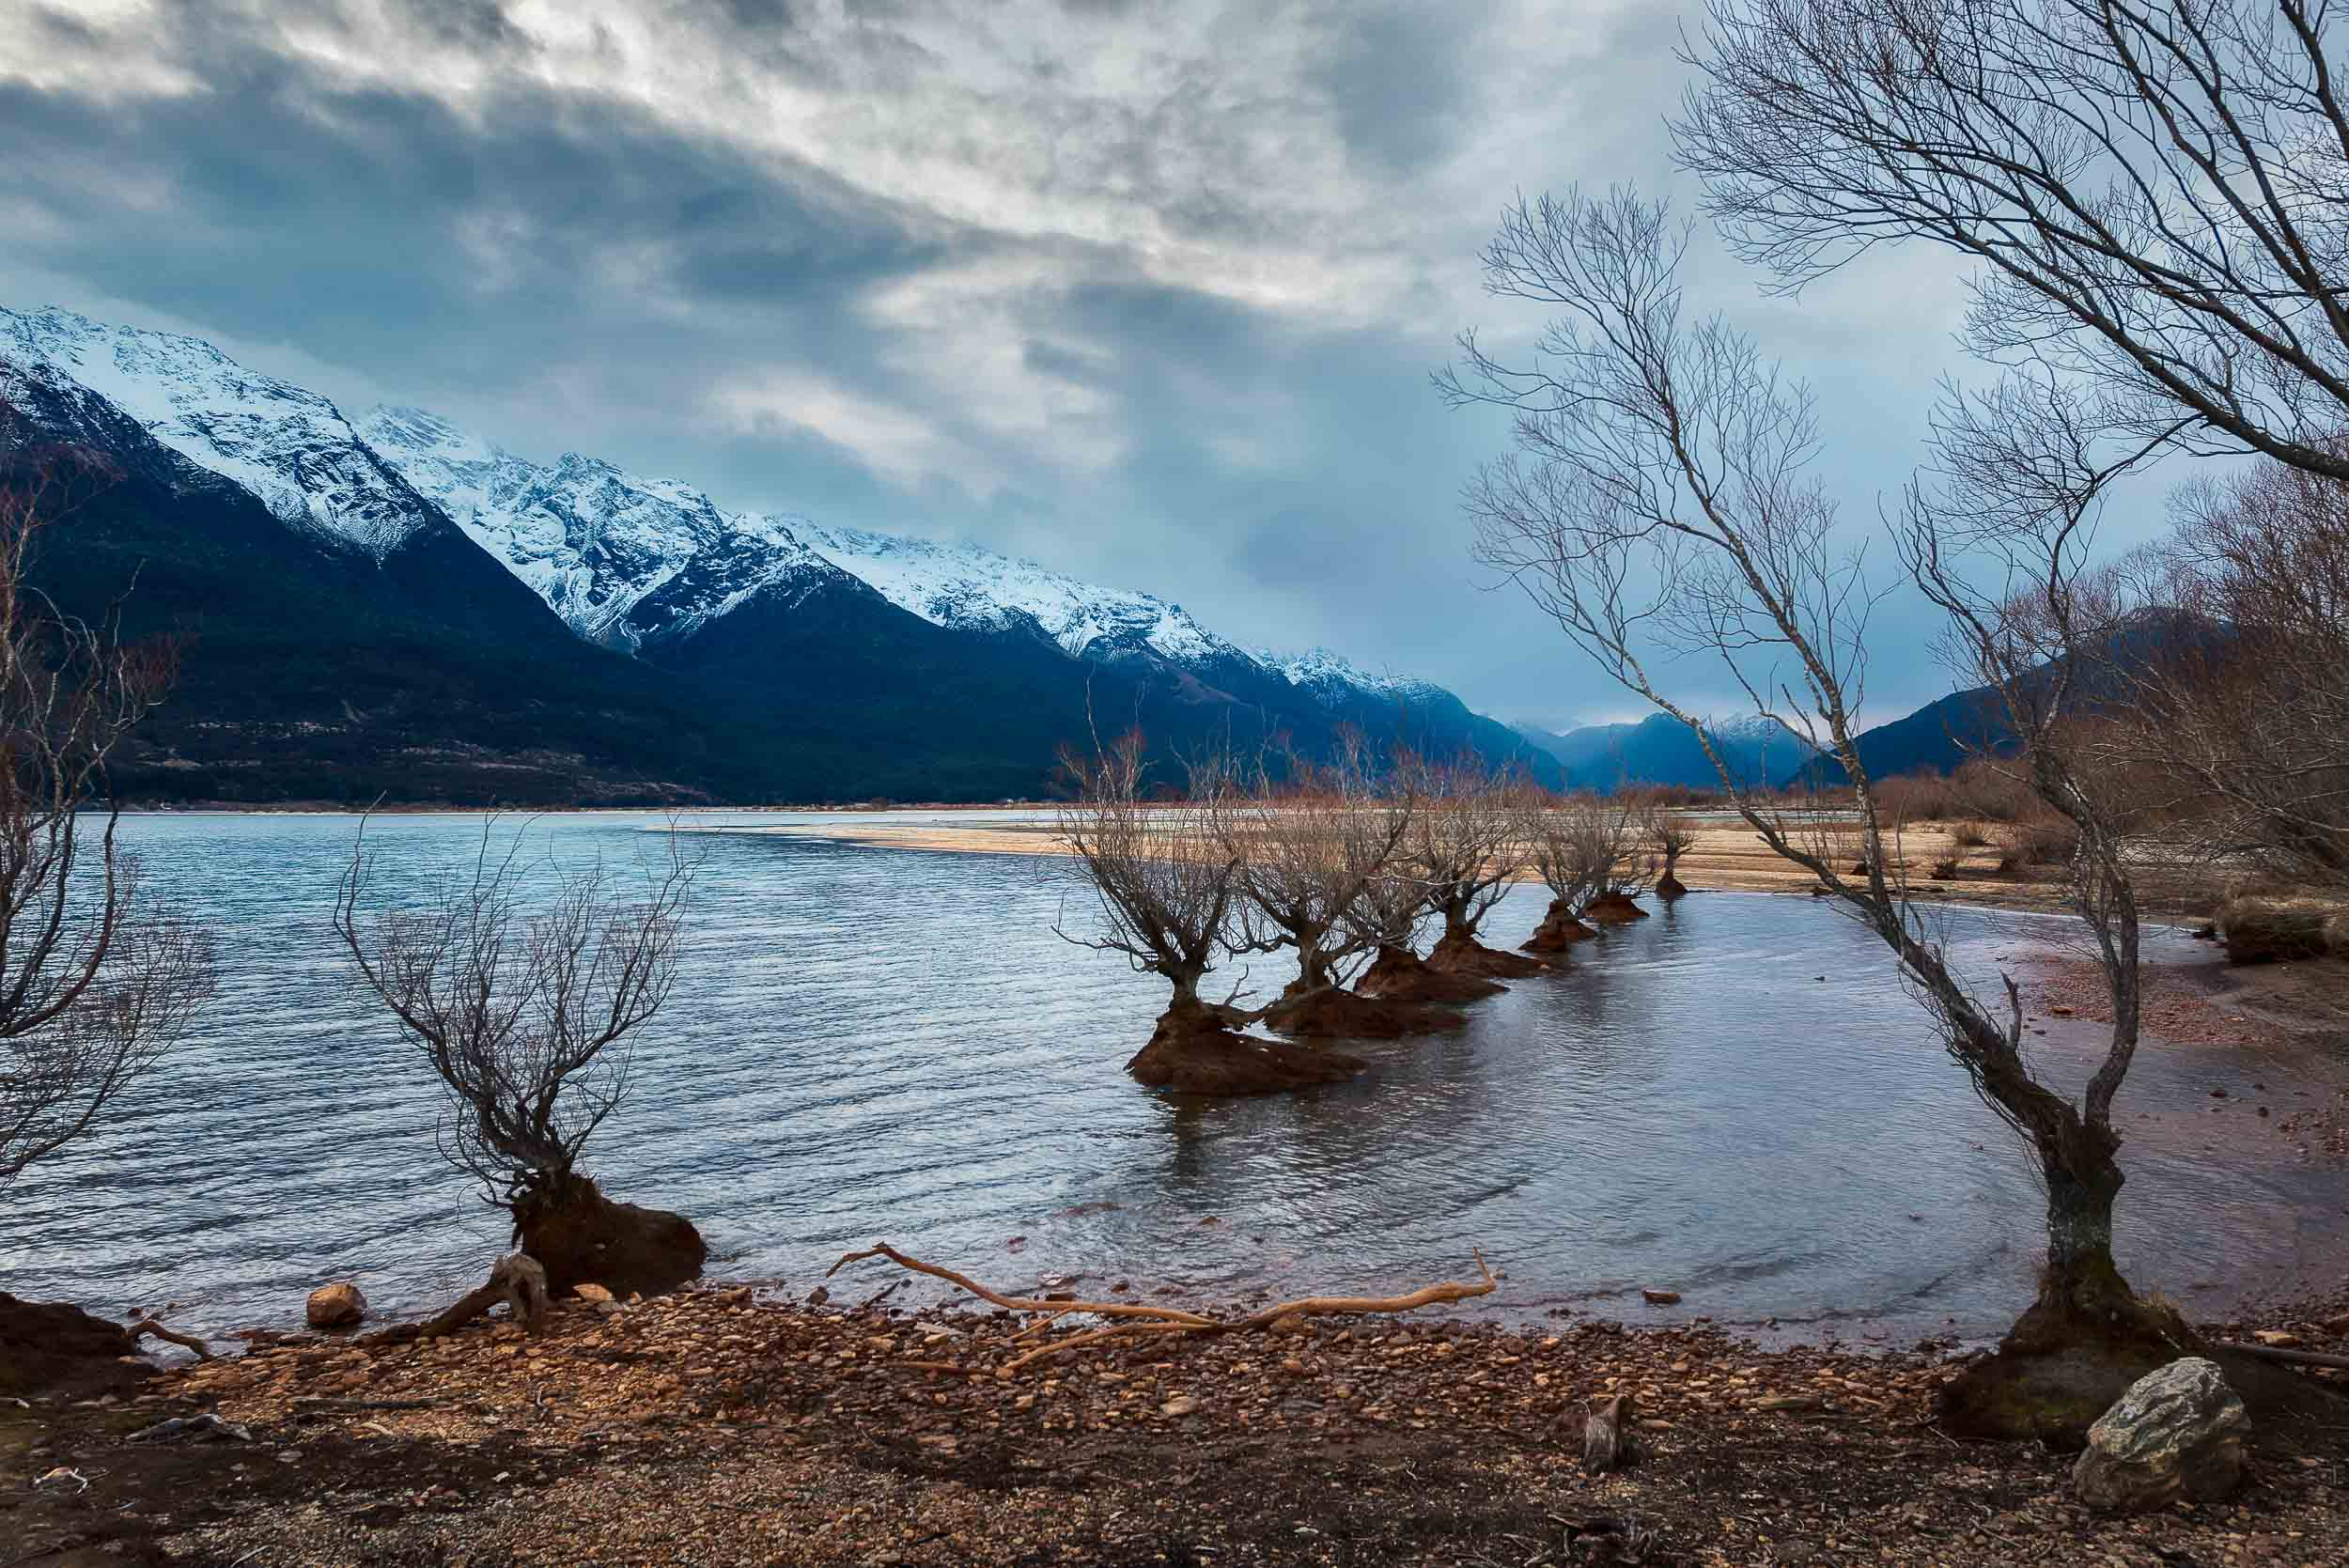 A stand of trees in the lake, at days end, in    Glenorchy, New Zealand   .